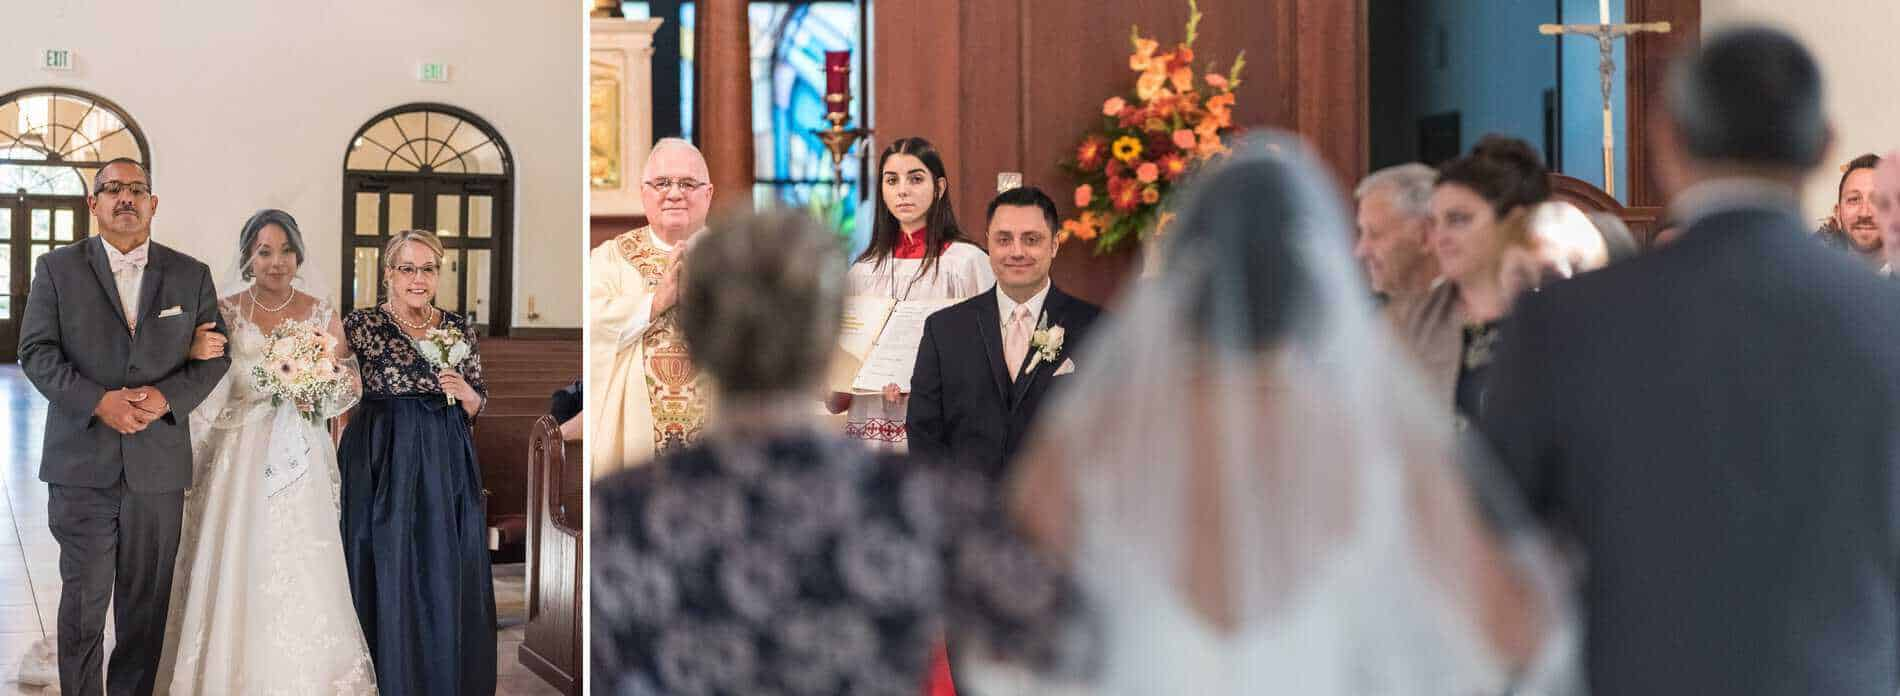 Groom sees his Bride for the first time at Corpus Christi Catholic Church